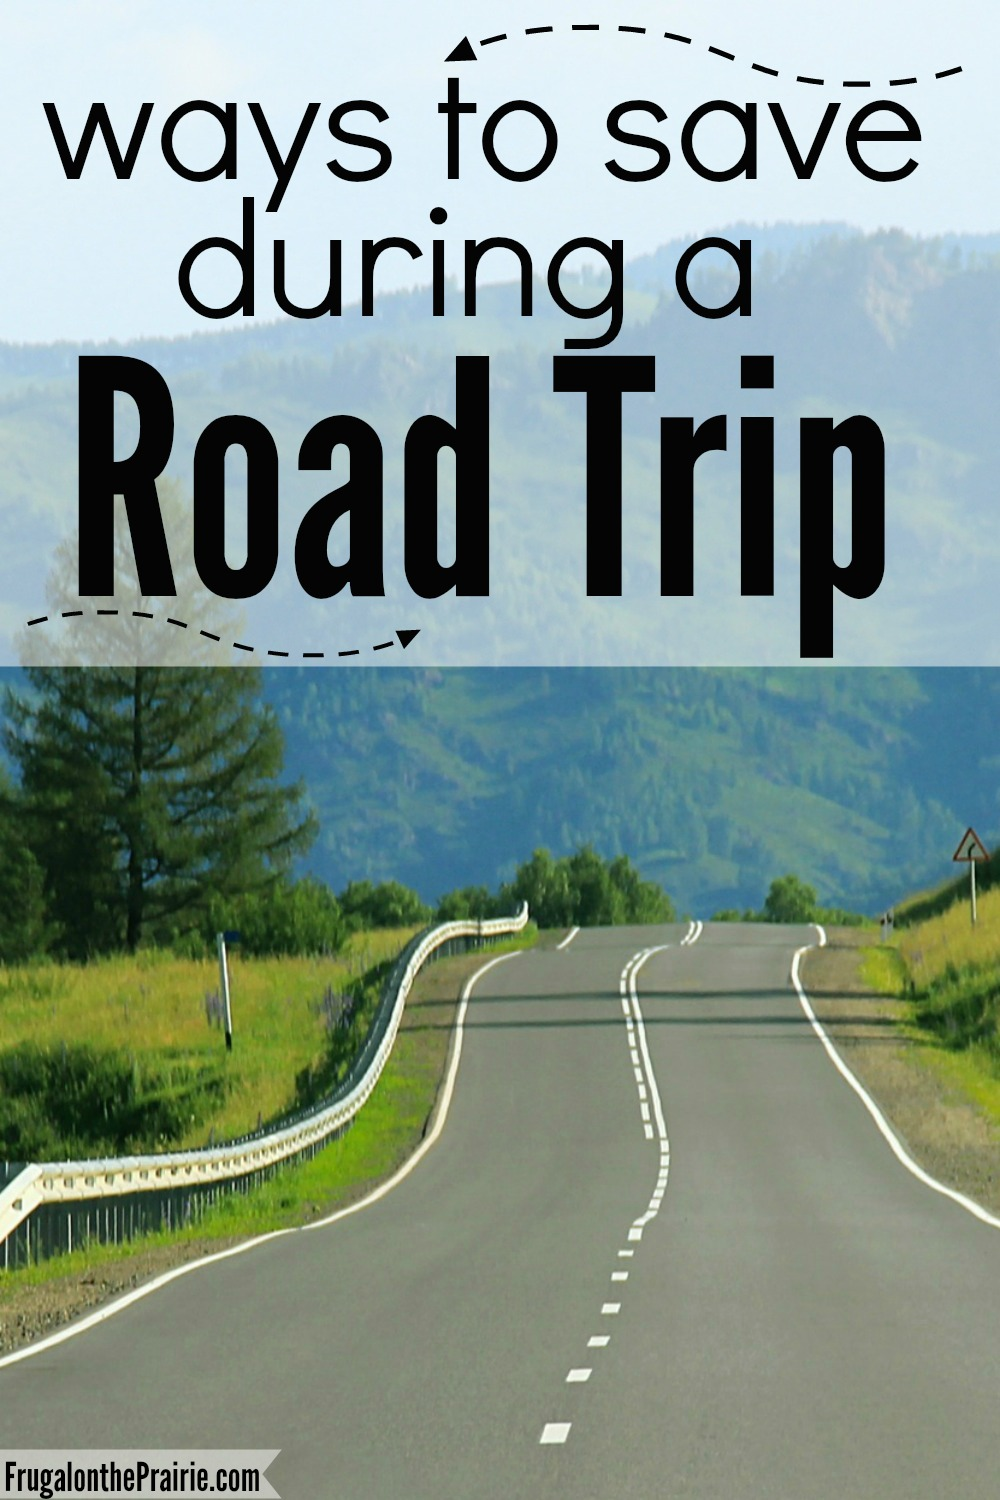 With the cost of plane tickets and rental vehicles, sometimes it is just cheaper to take a road trip. Here are 7 ways to save during a road trip.